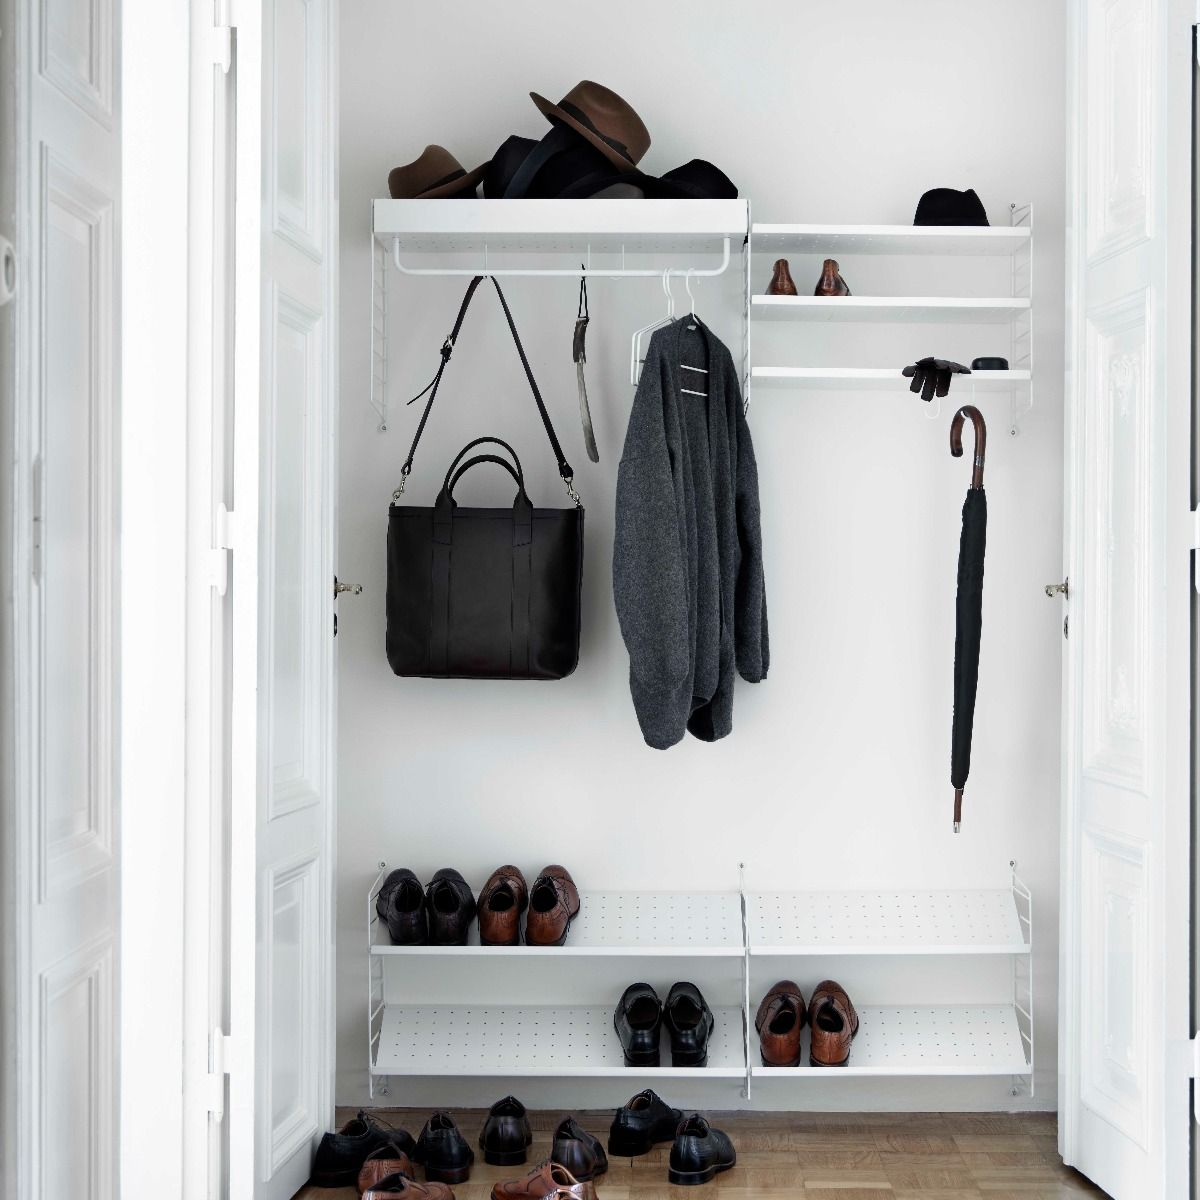 String shelving hall way system with shoe shelves